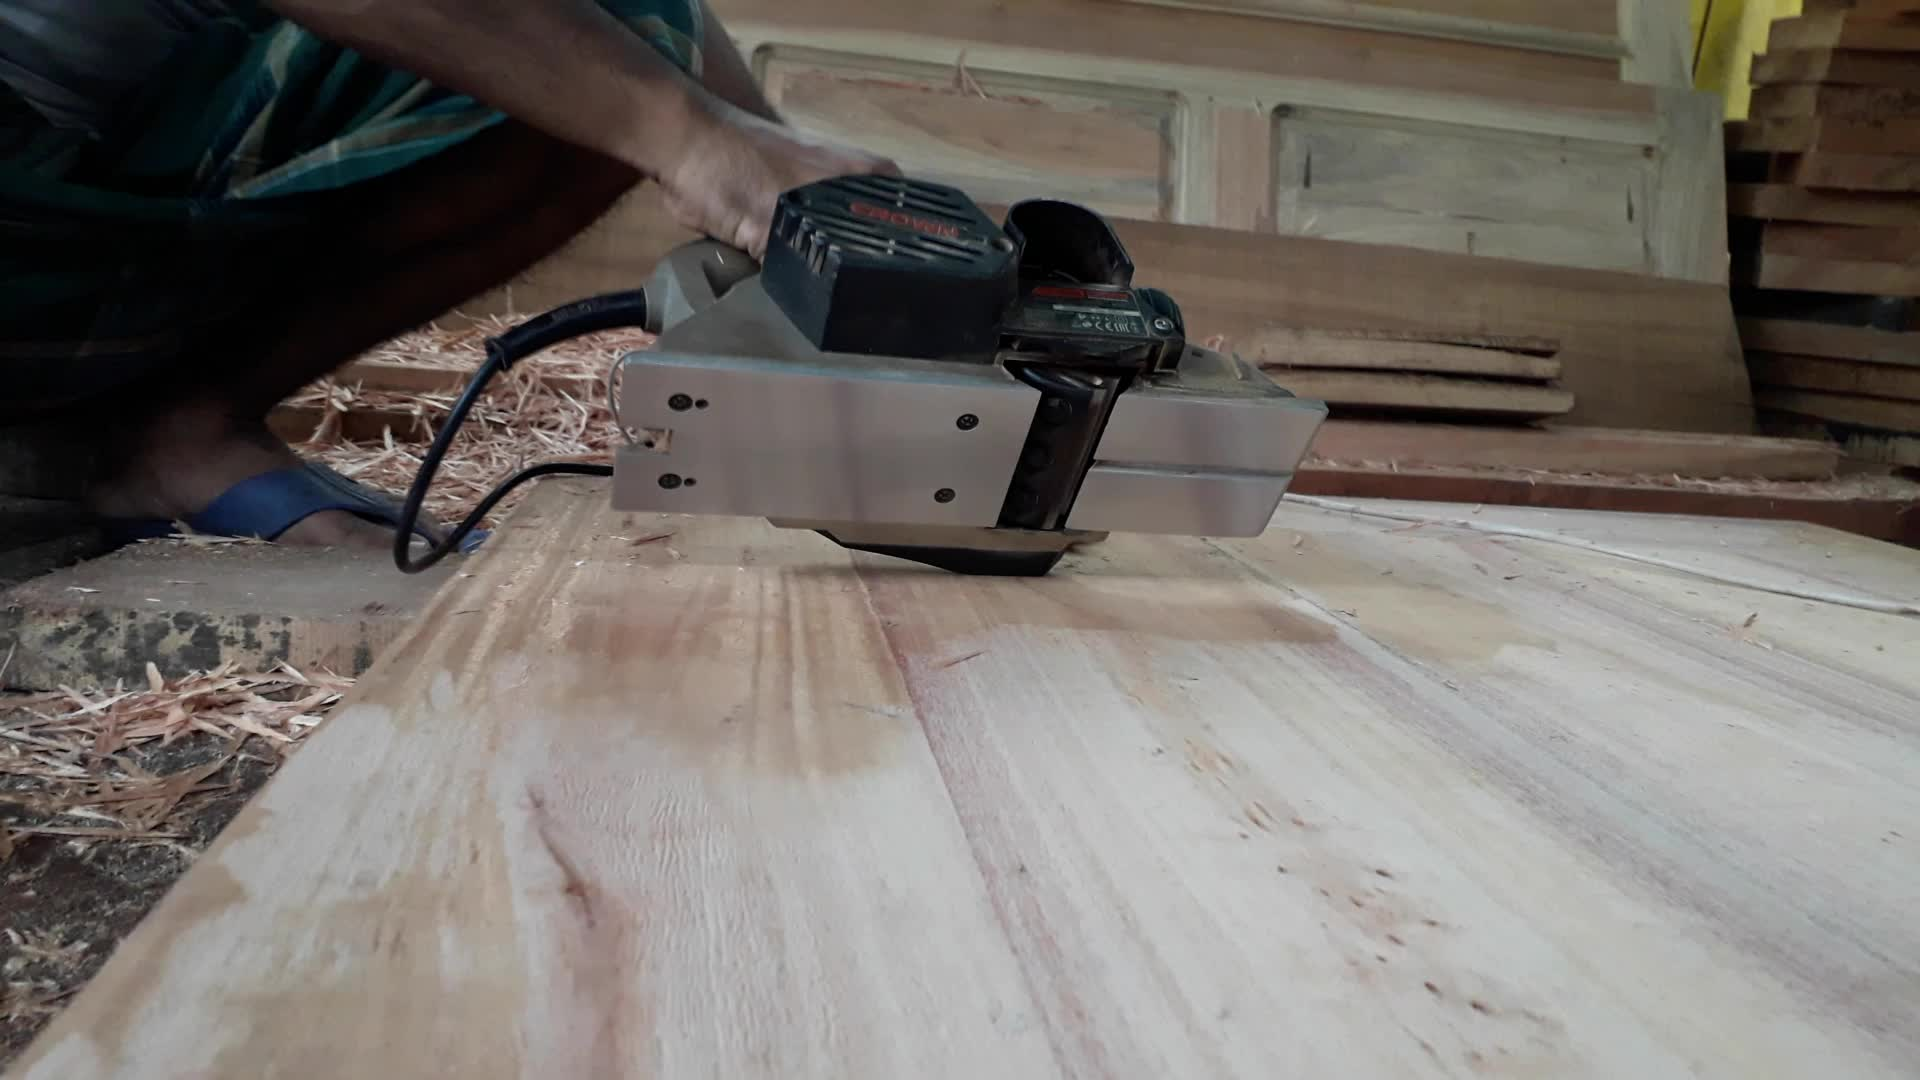 Digital Wood cleaning machine